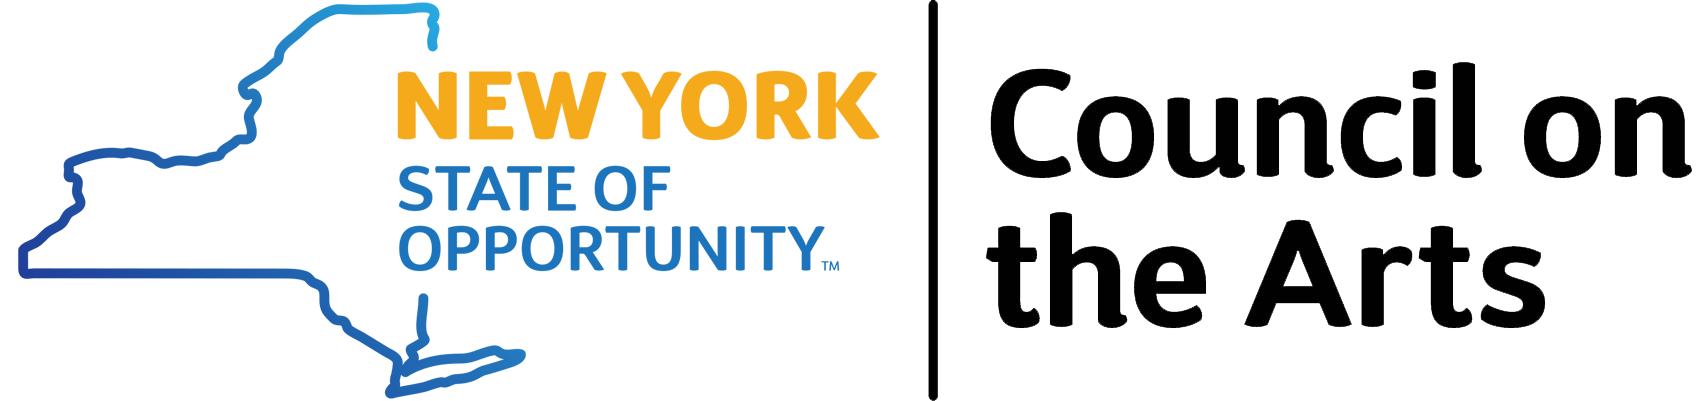 New York - State of Opportunity. Council on the Arts